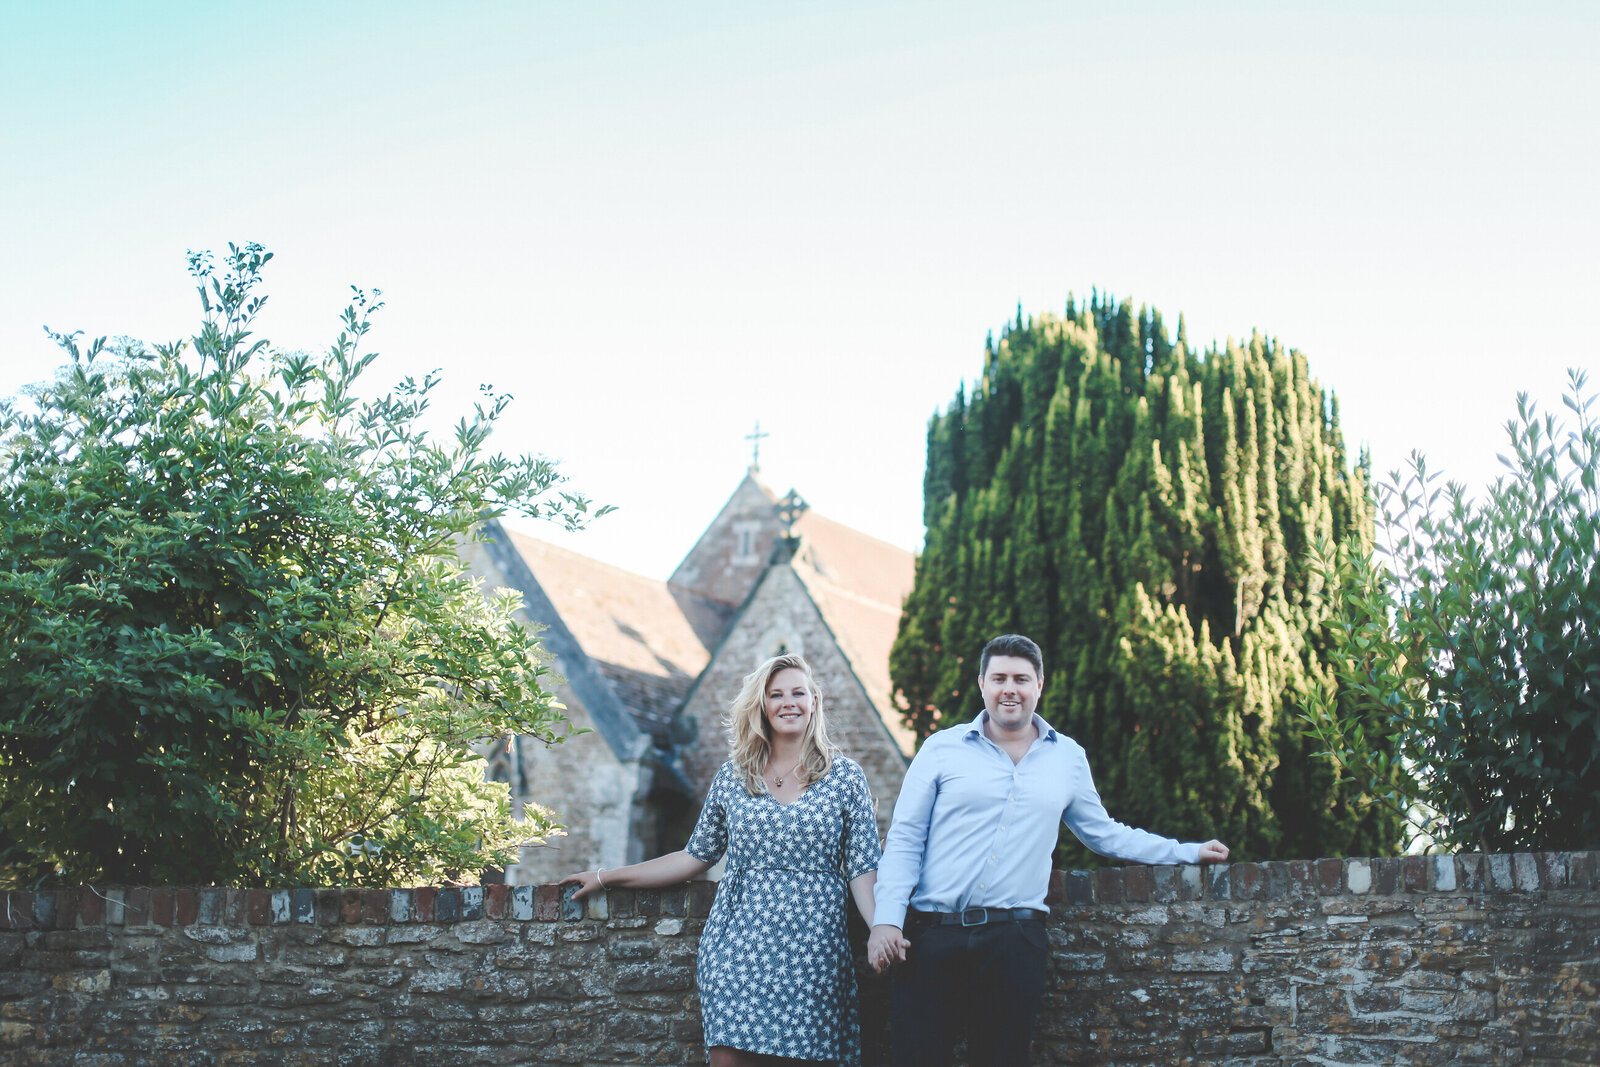 PREWEDDING_ENGAGEMENT_SHOOT_SURREY_010006